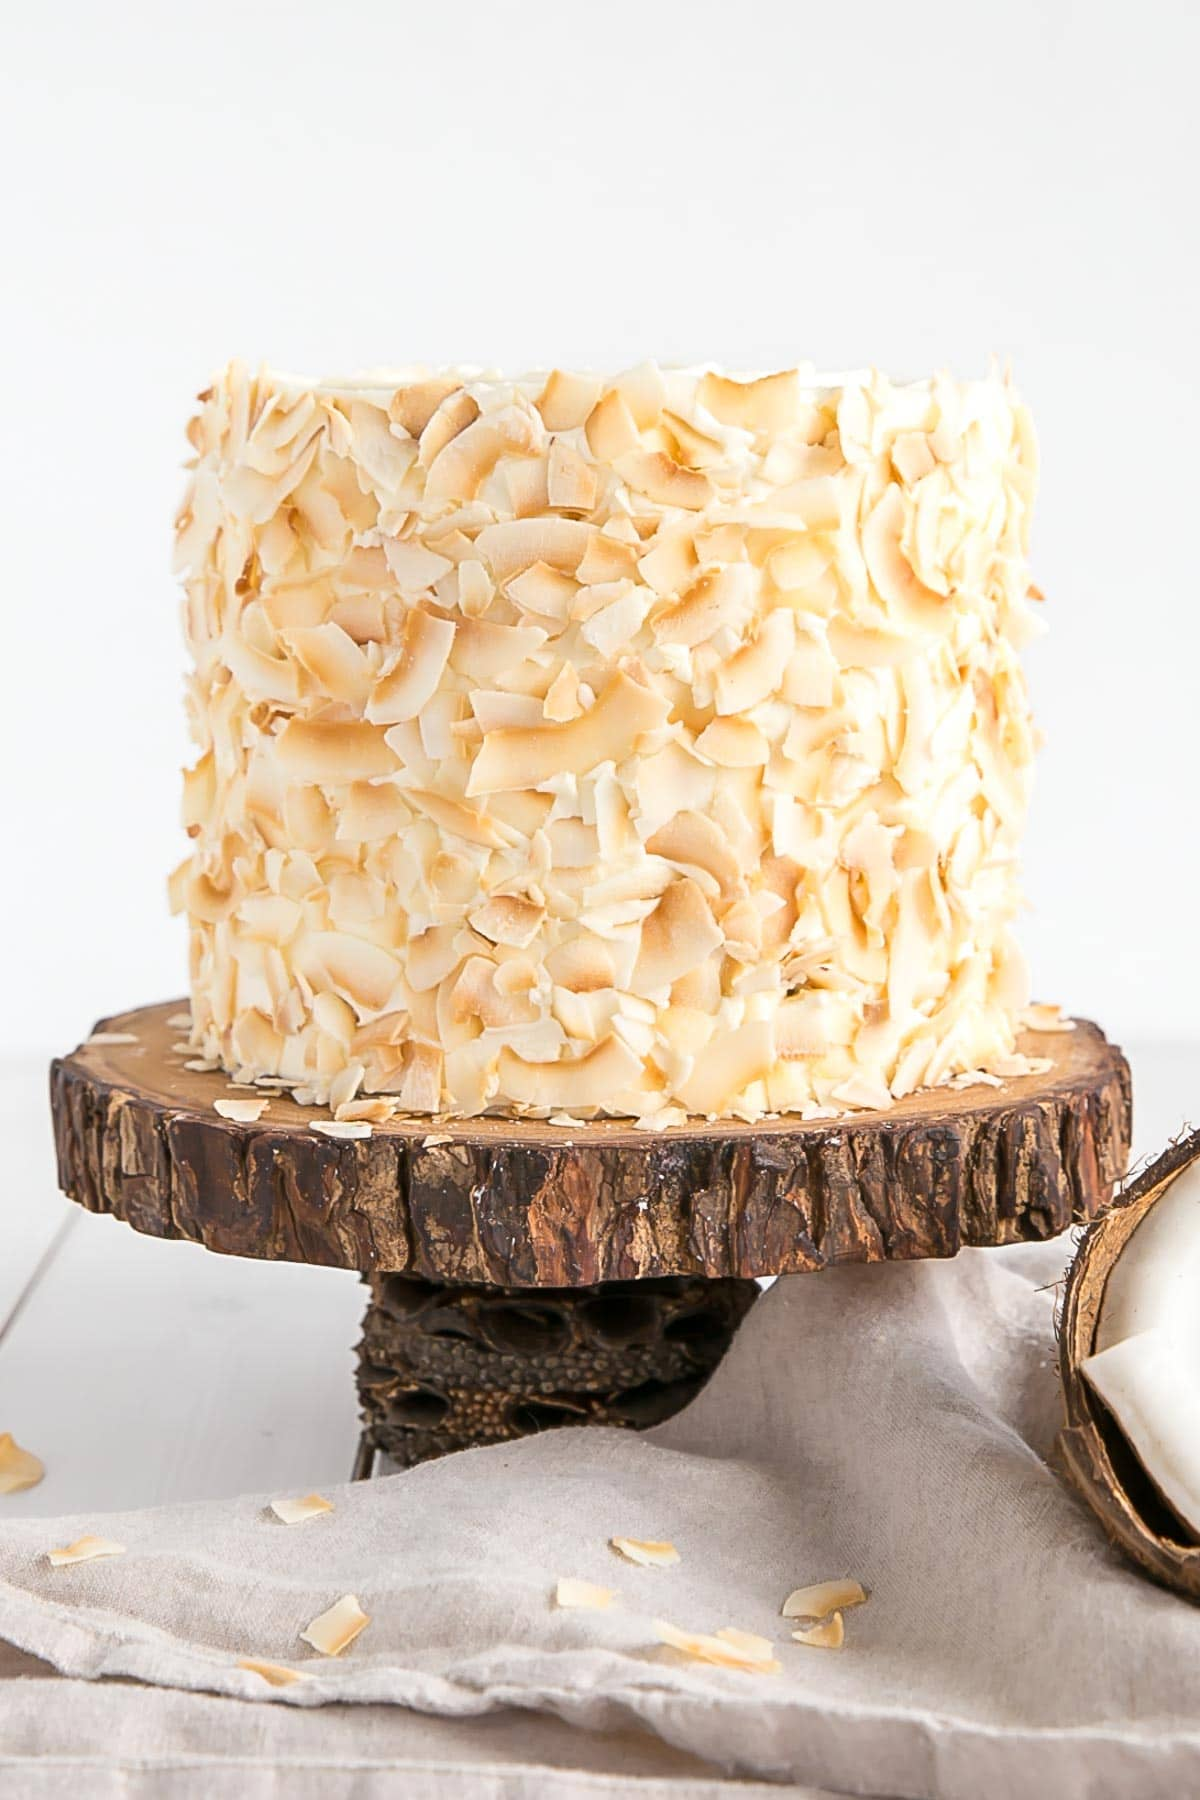 Coconut cake with toasted coconut flakes.